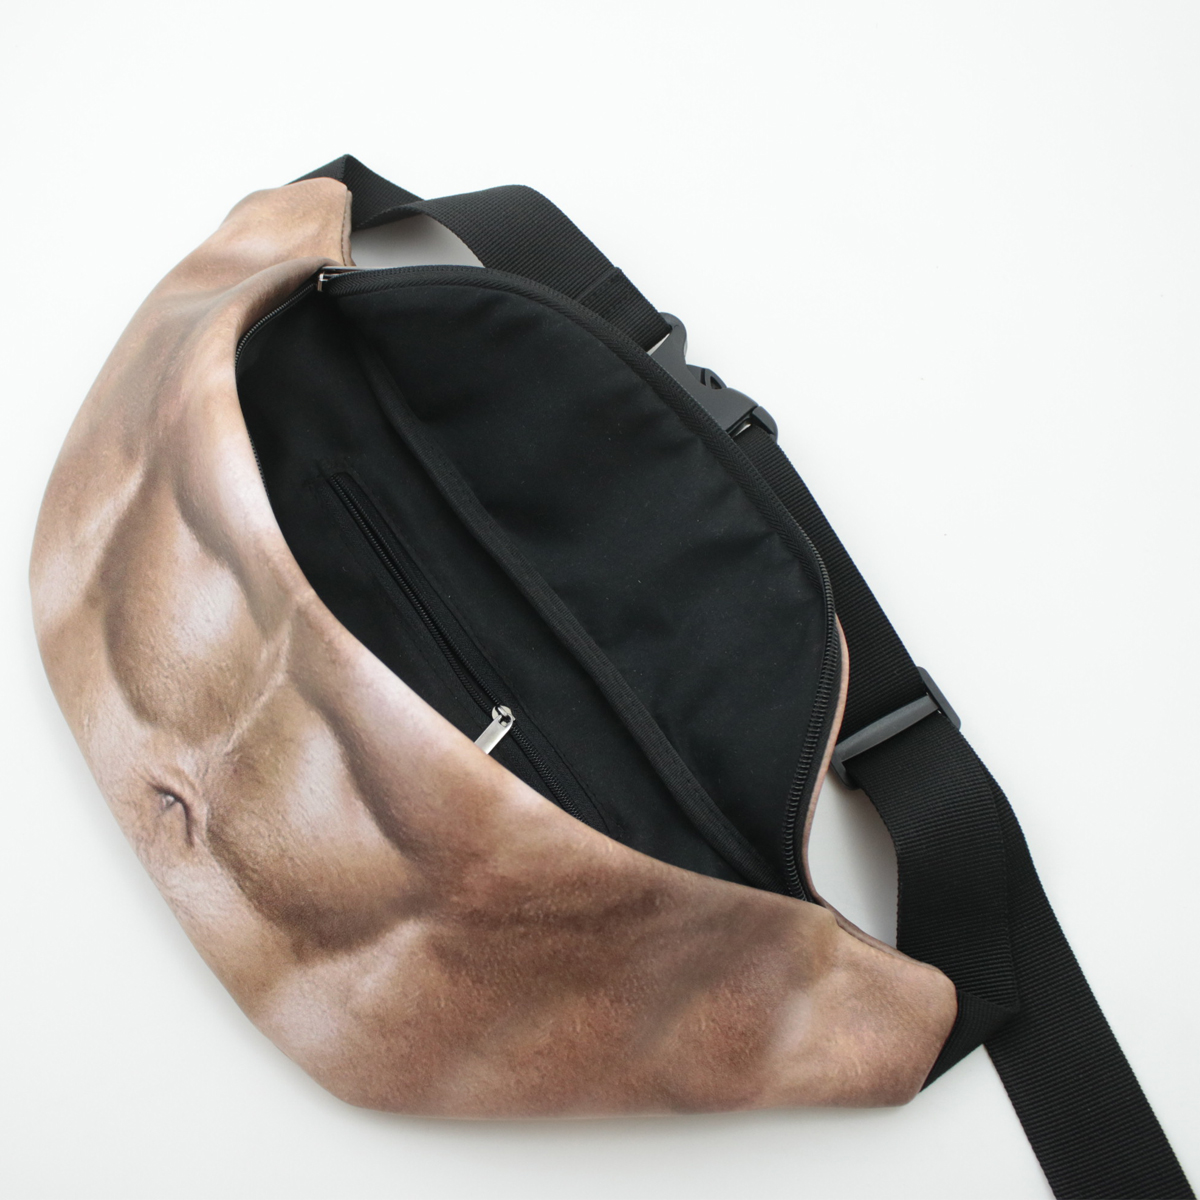 BIKIGHT Cycling Waist Bag Muscle Flesh Colored Beer Fat Belly Fanny Pocket Pack Fun